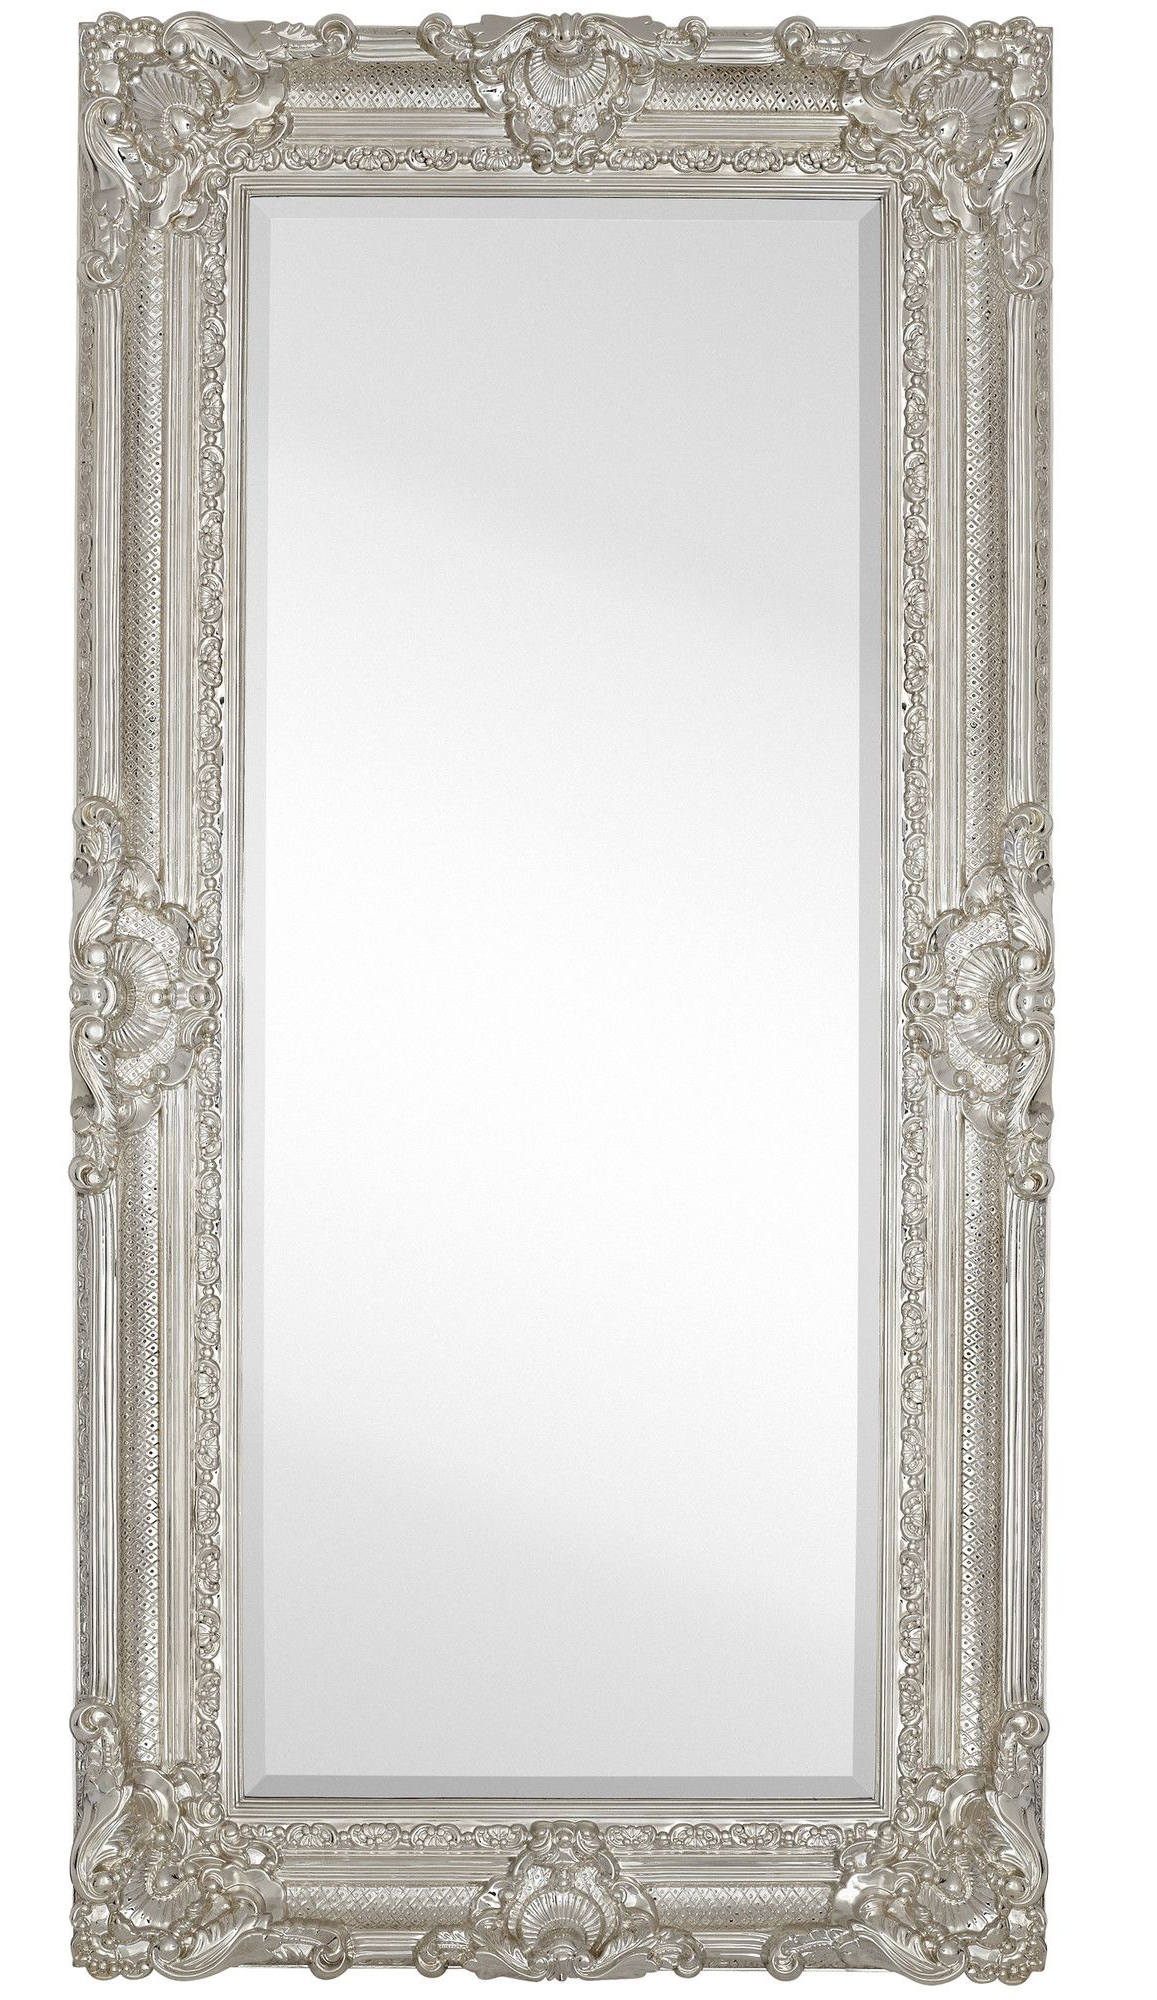 Large Traditional Polished Chrome Rectangular Beveled Glass Framed With Regard To Well Liked Chrome Wall Mirrors (Gallery 8 of 20)